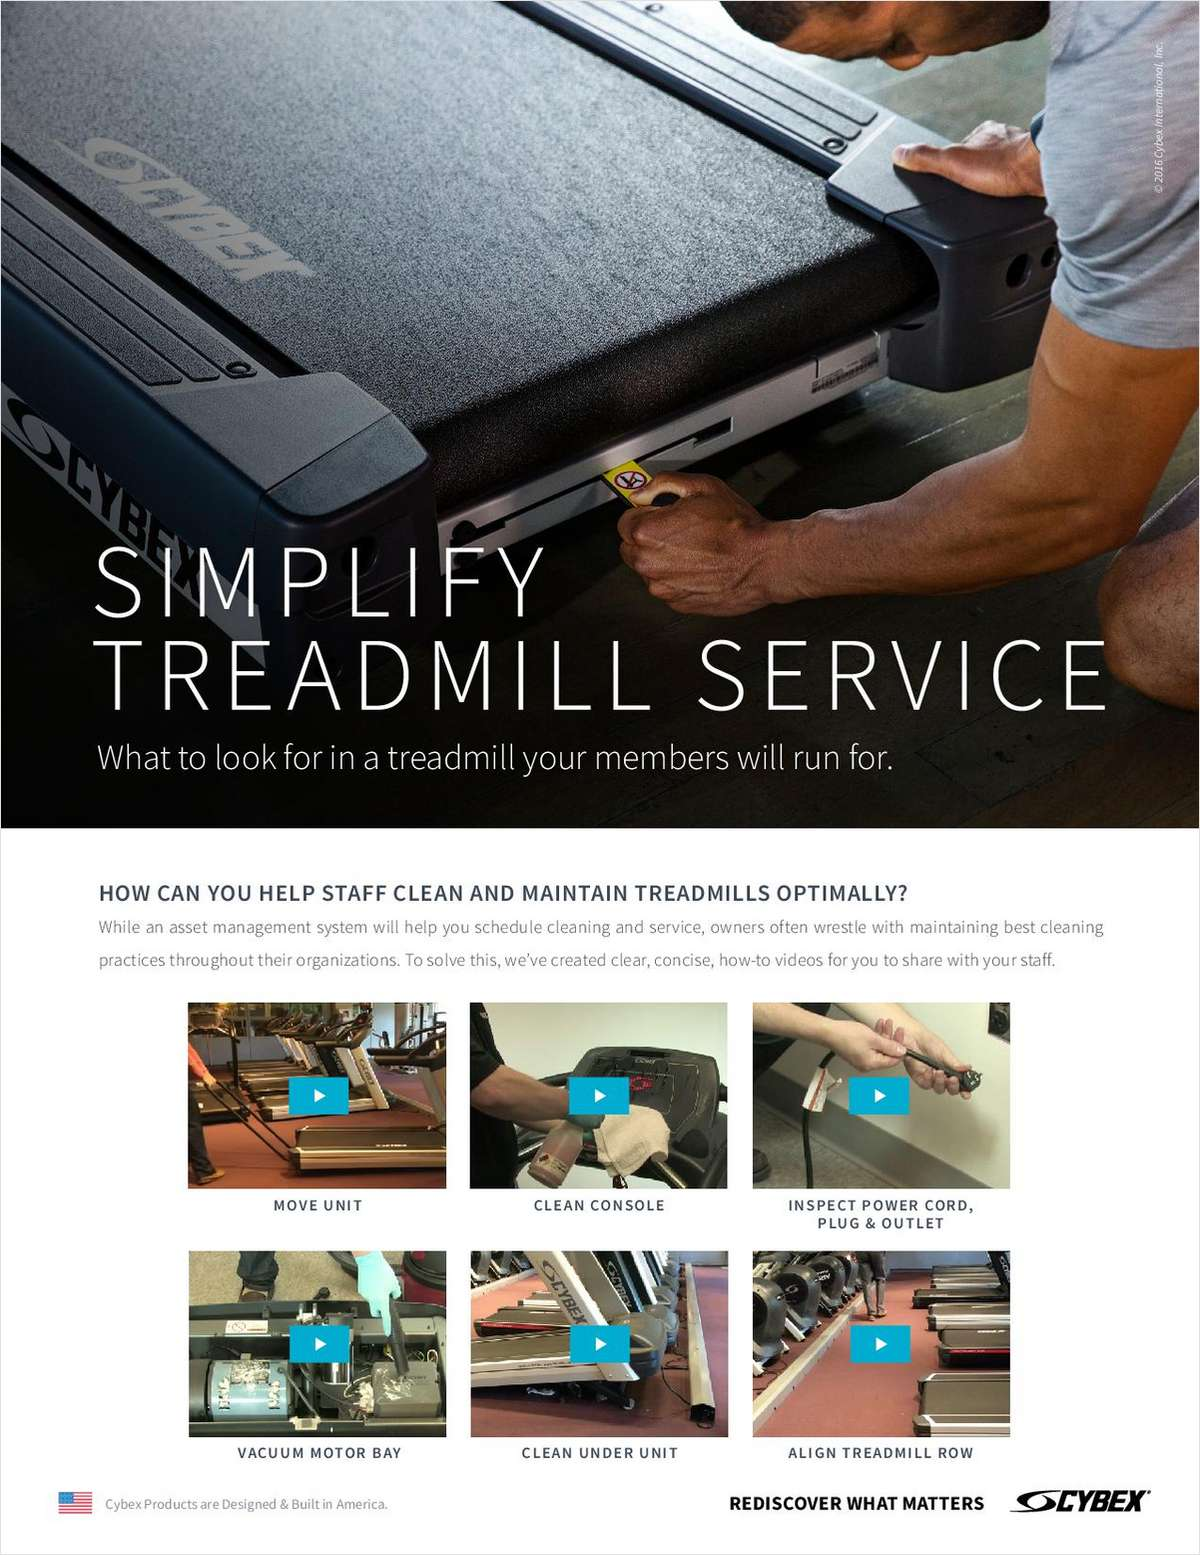 Simplify Your Treadmill Service in 6 Easy Steps